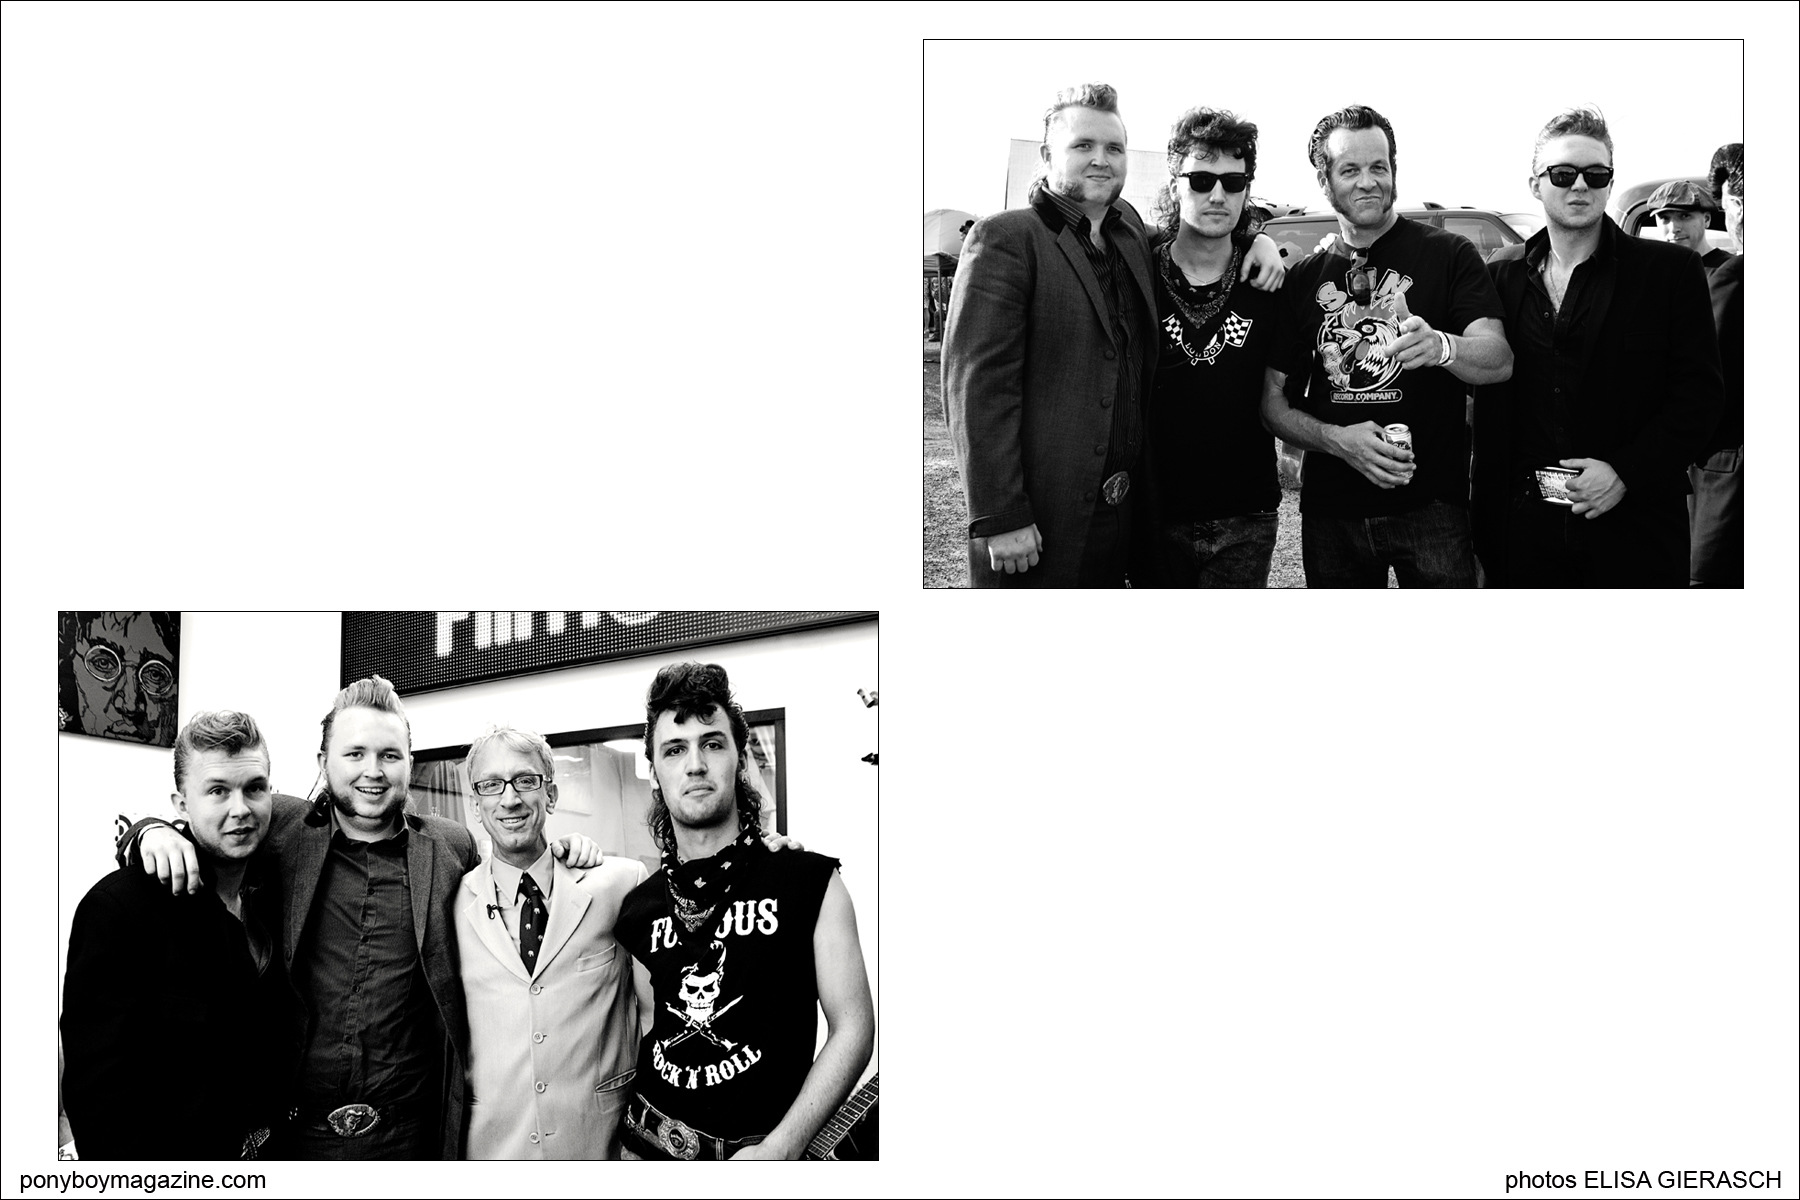 Photos by Elisa Gierasch of teddy boy band Furious, while touring in California. Ponyboy Magazine.